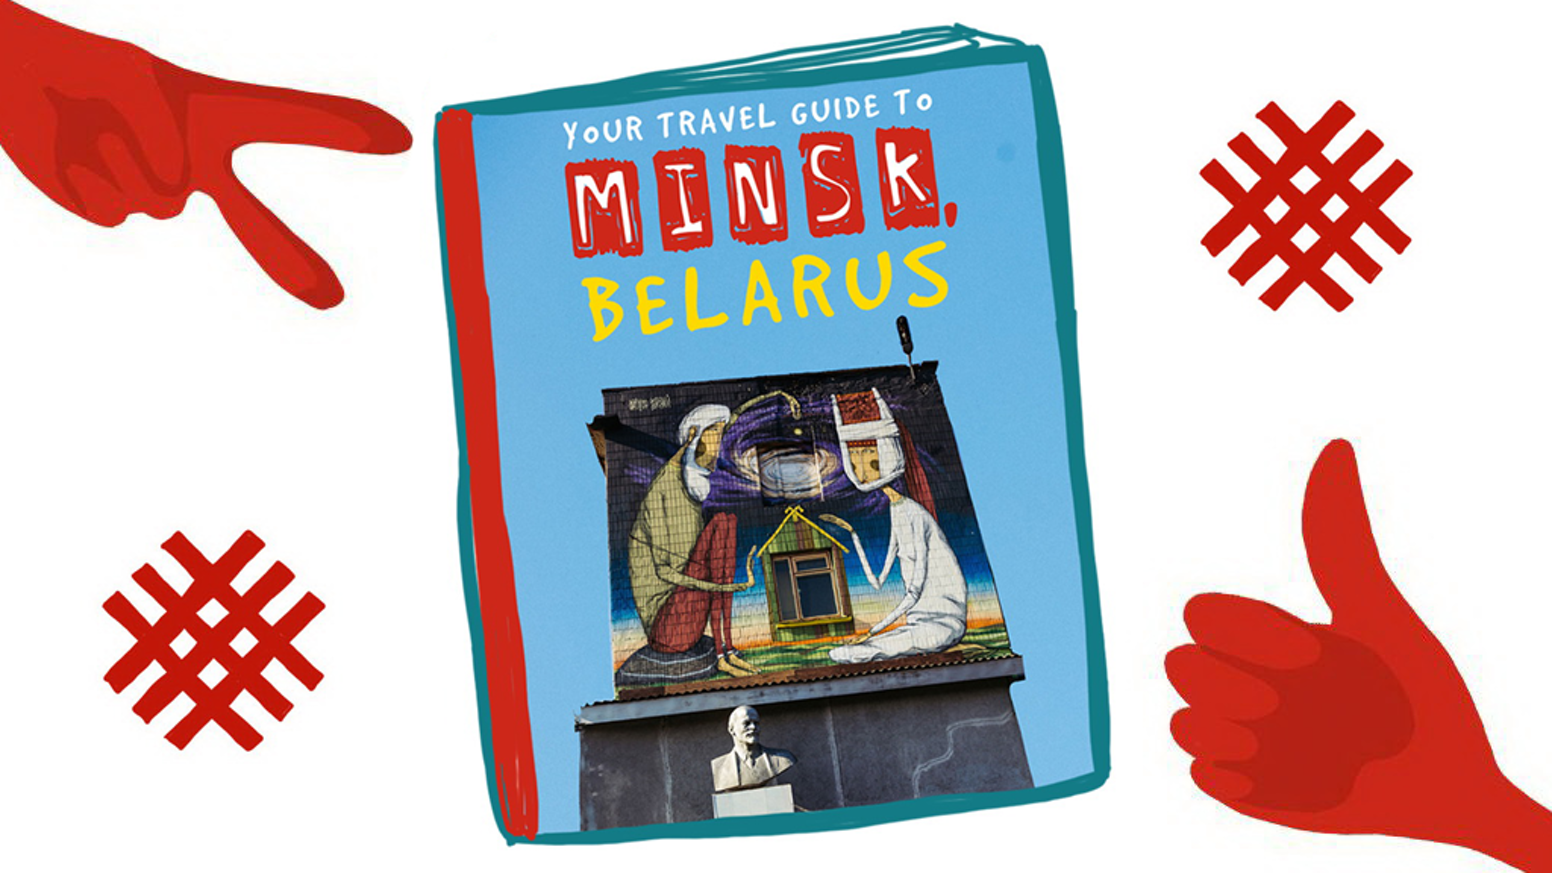 The one and only travel guide in English to this undiscovered piece of Europe, Minsk, Belarus. From a locals perspective, fun and illustrative!